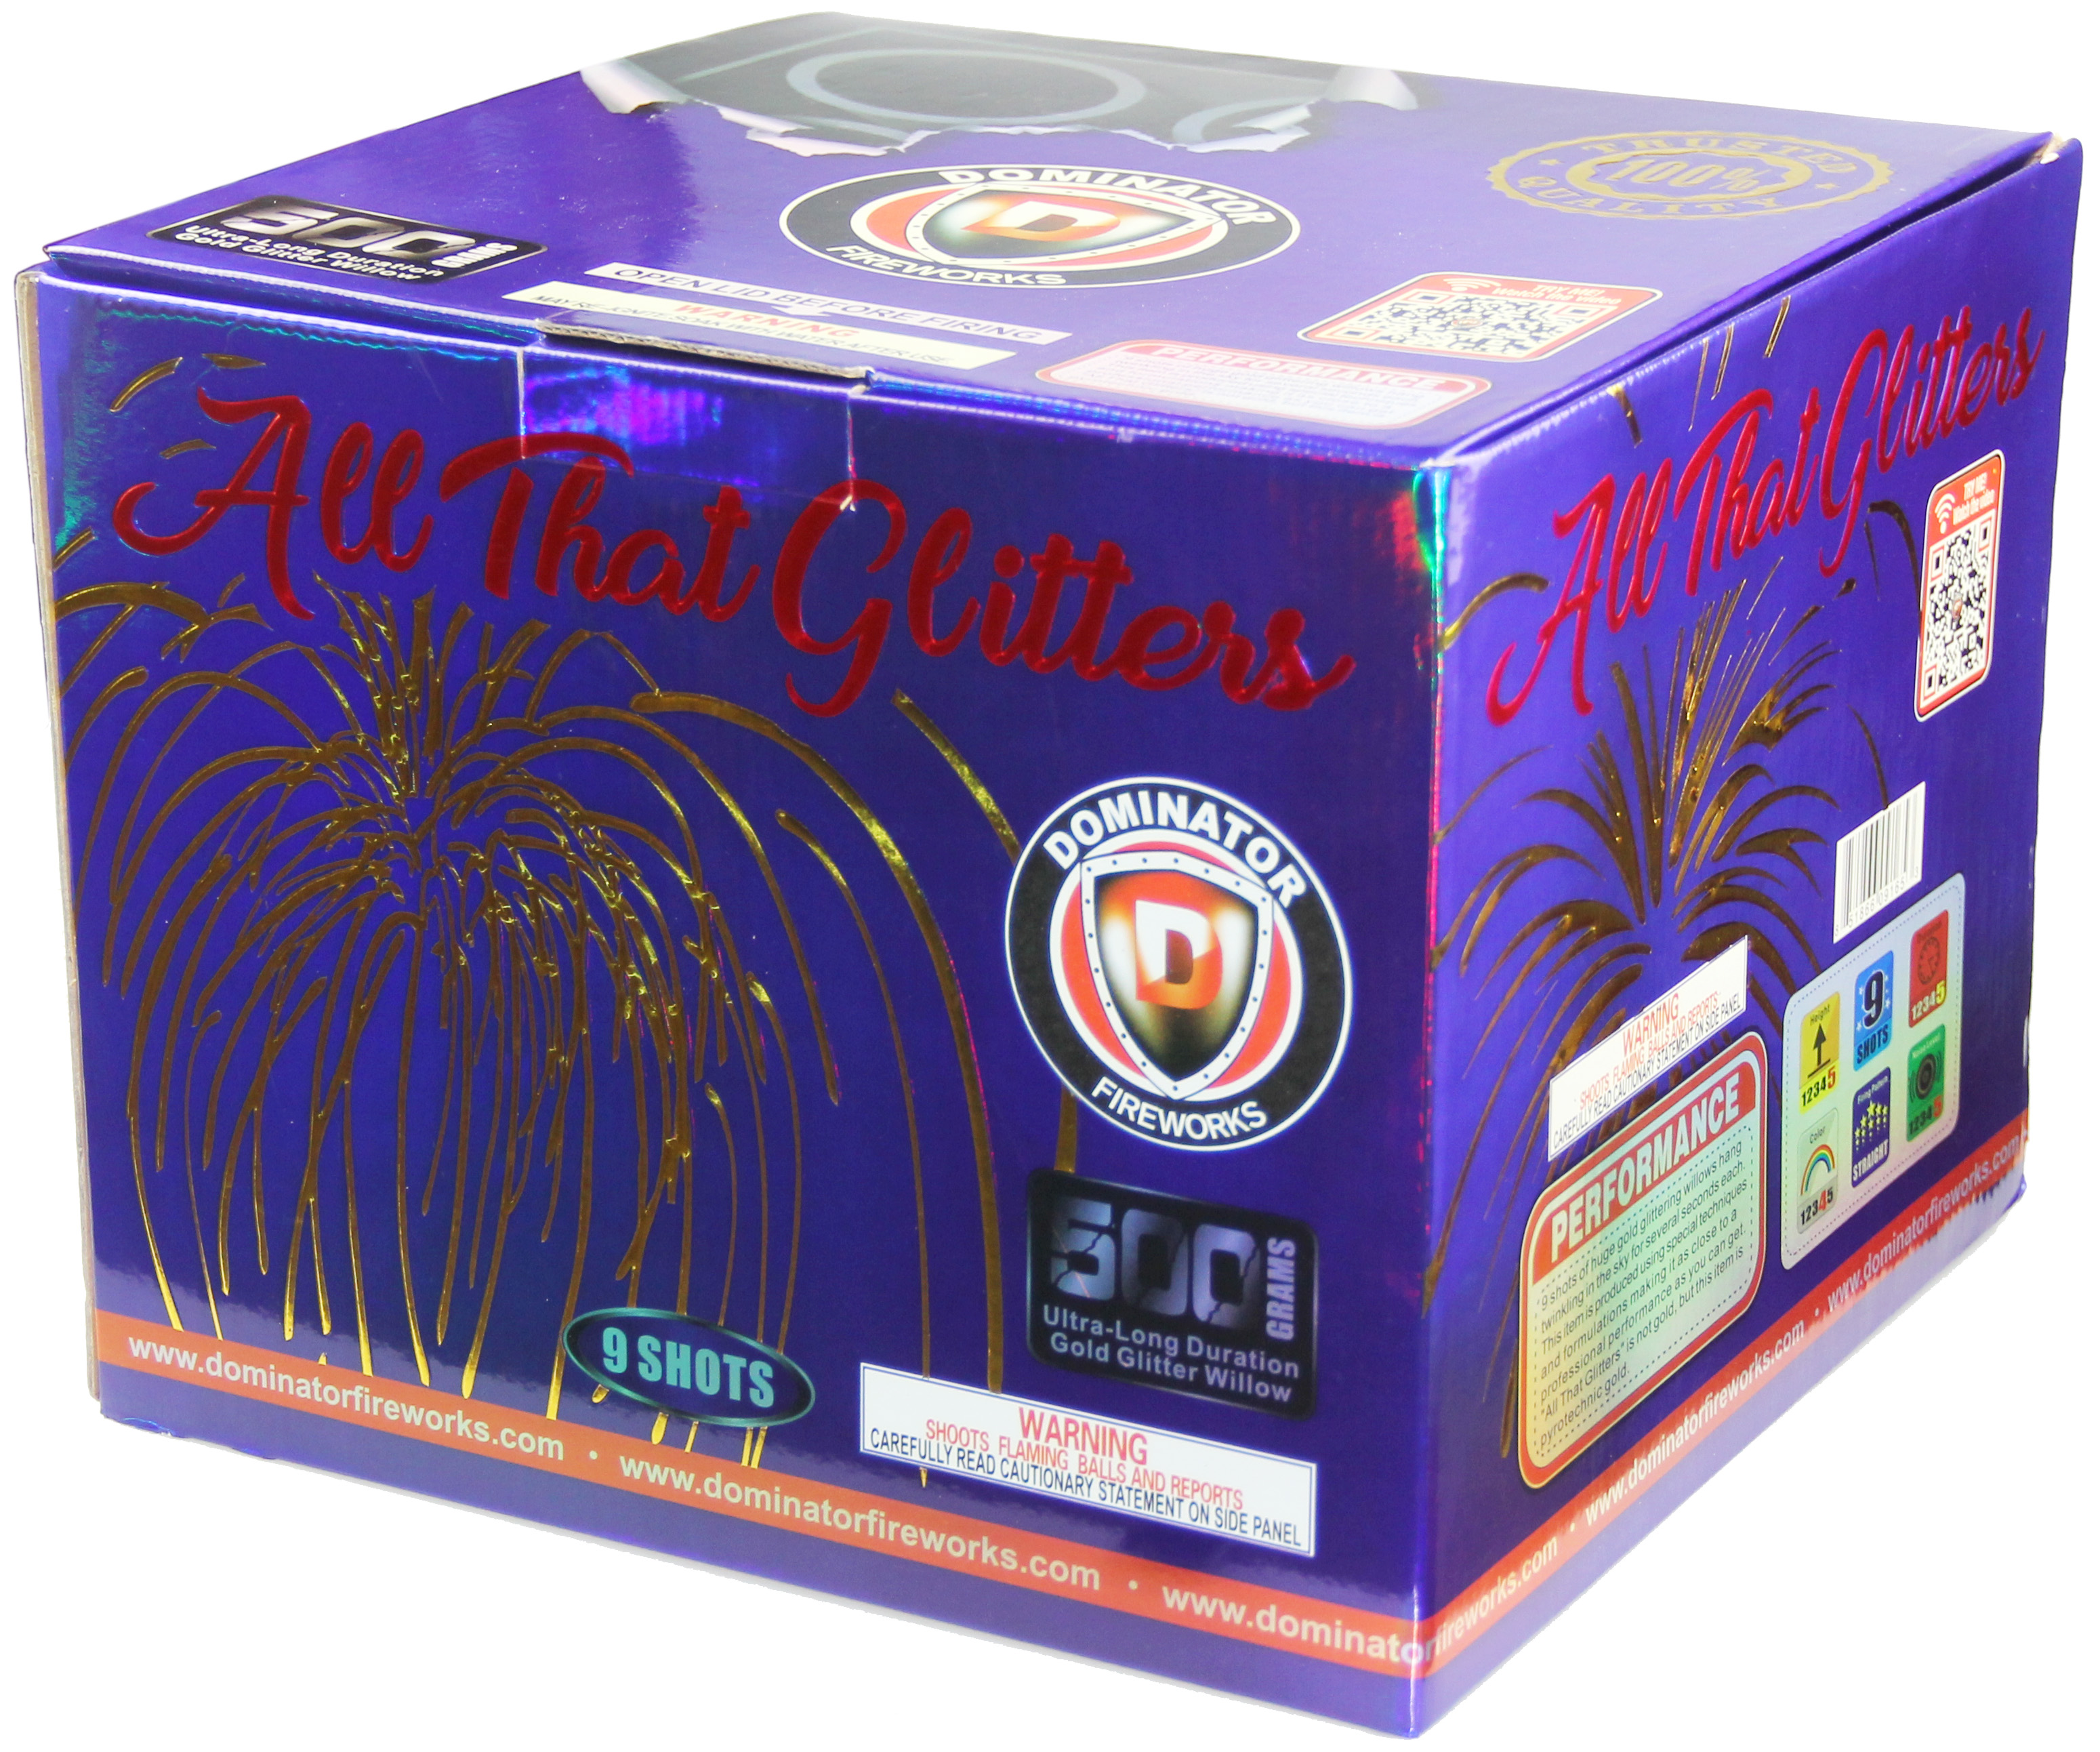 Newest Products From Liuyang China Dominator Fireworks